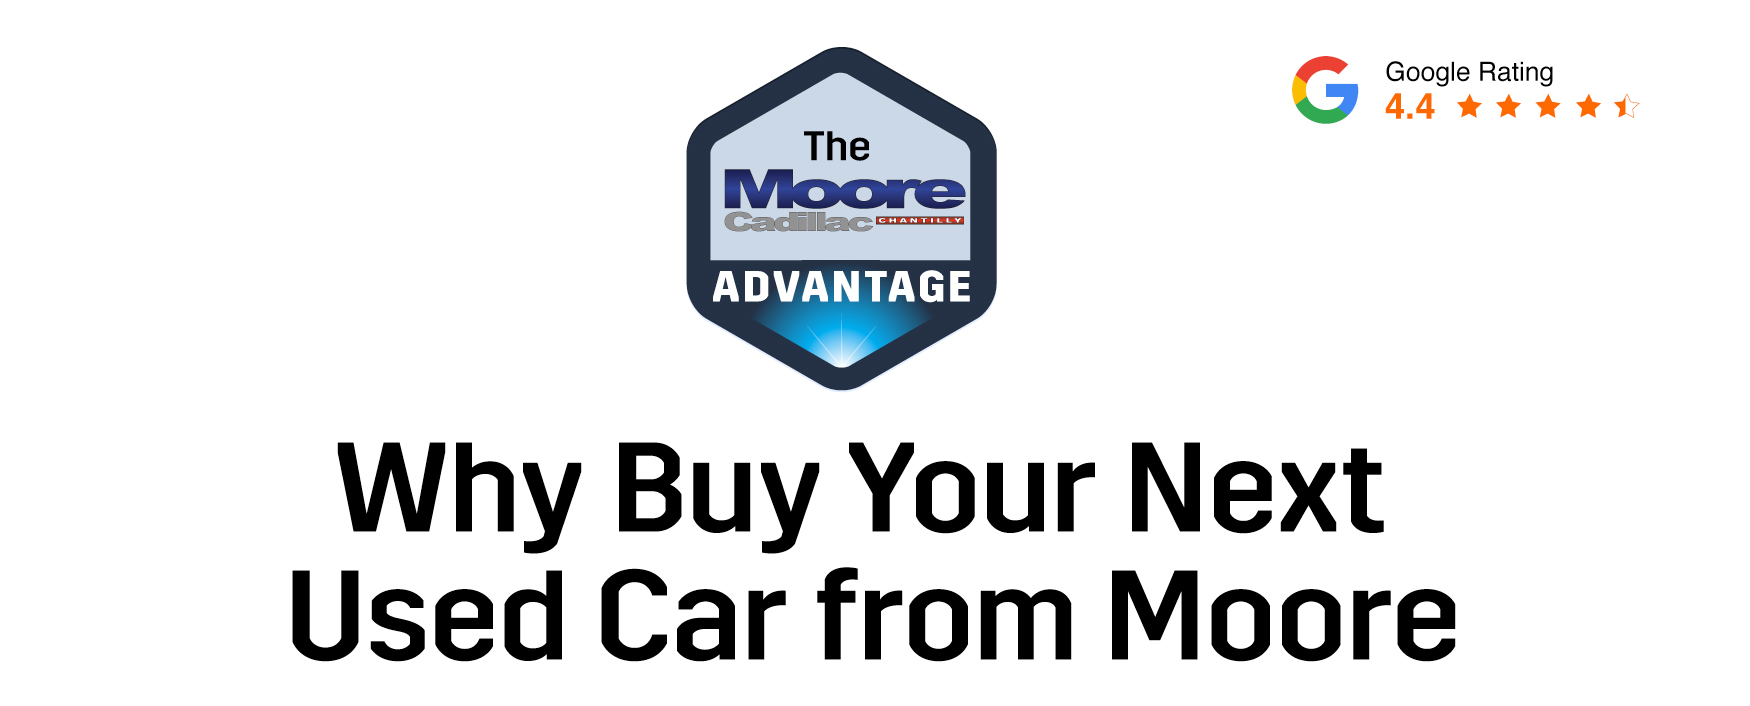 Why Buy Your Next Used Car from Moore